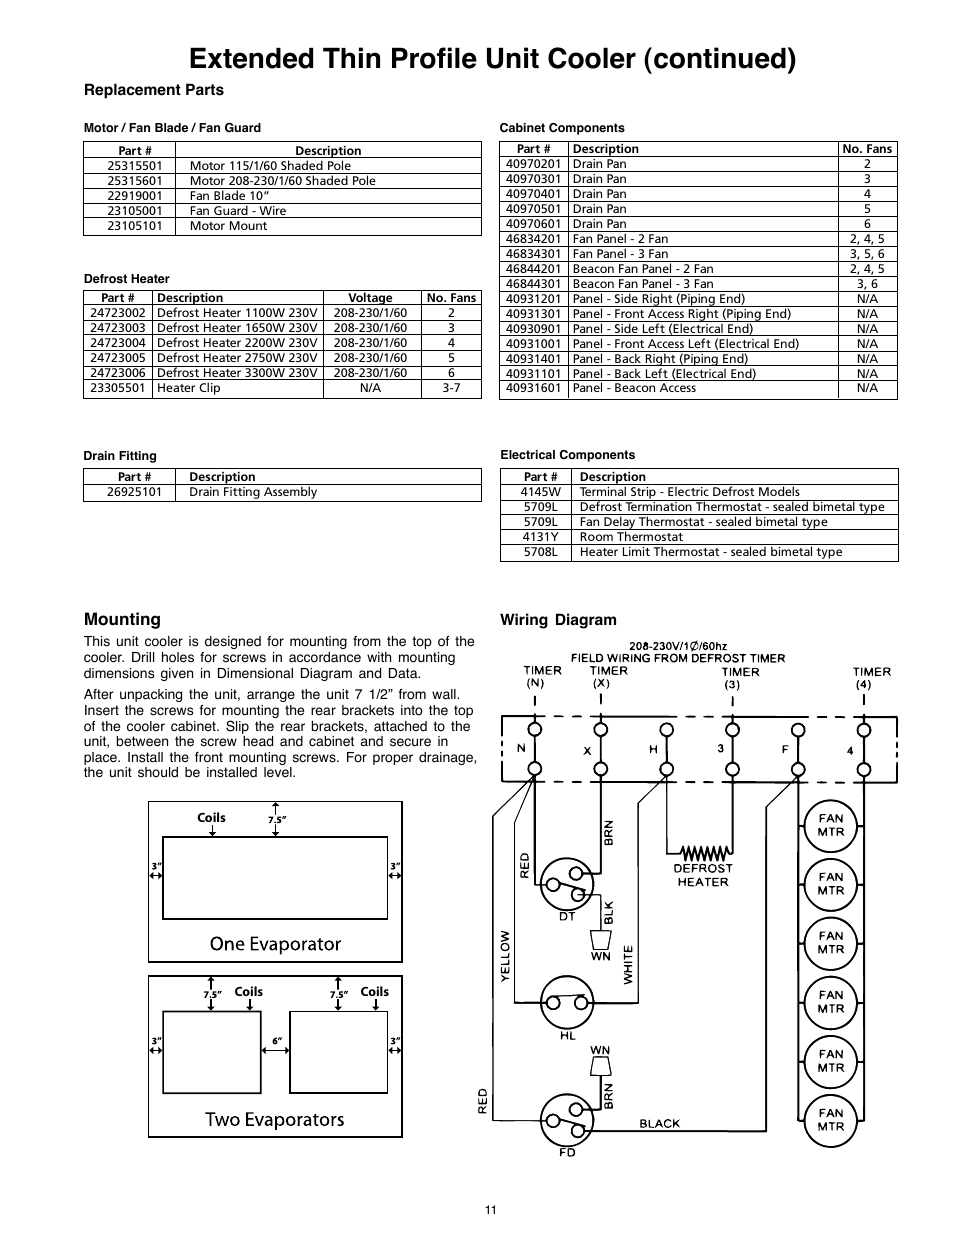 heatcraft refrigeration products 25005601 page11 extended thin profile unit cooler (continued), mounting heatcraft freezer wiring diagram at webbmarketing.co